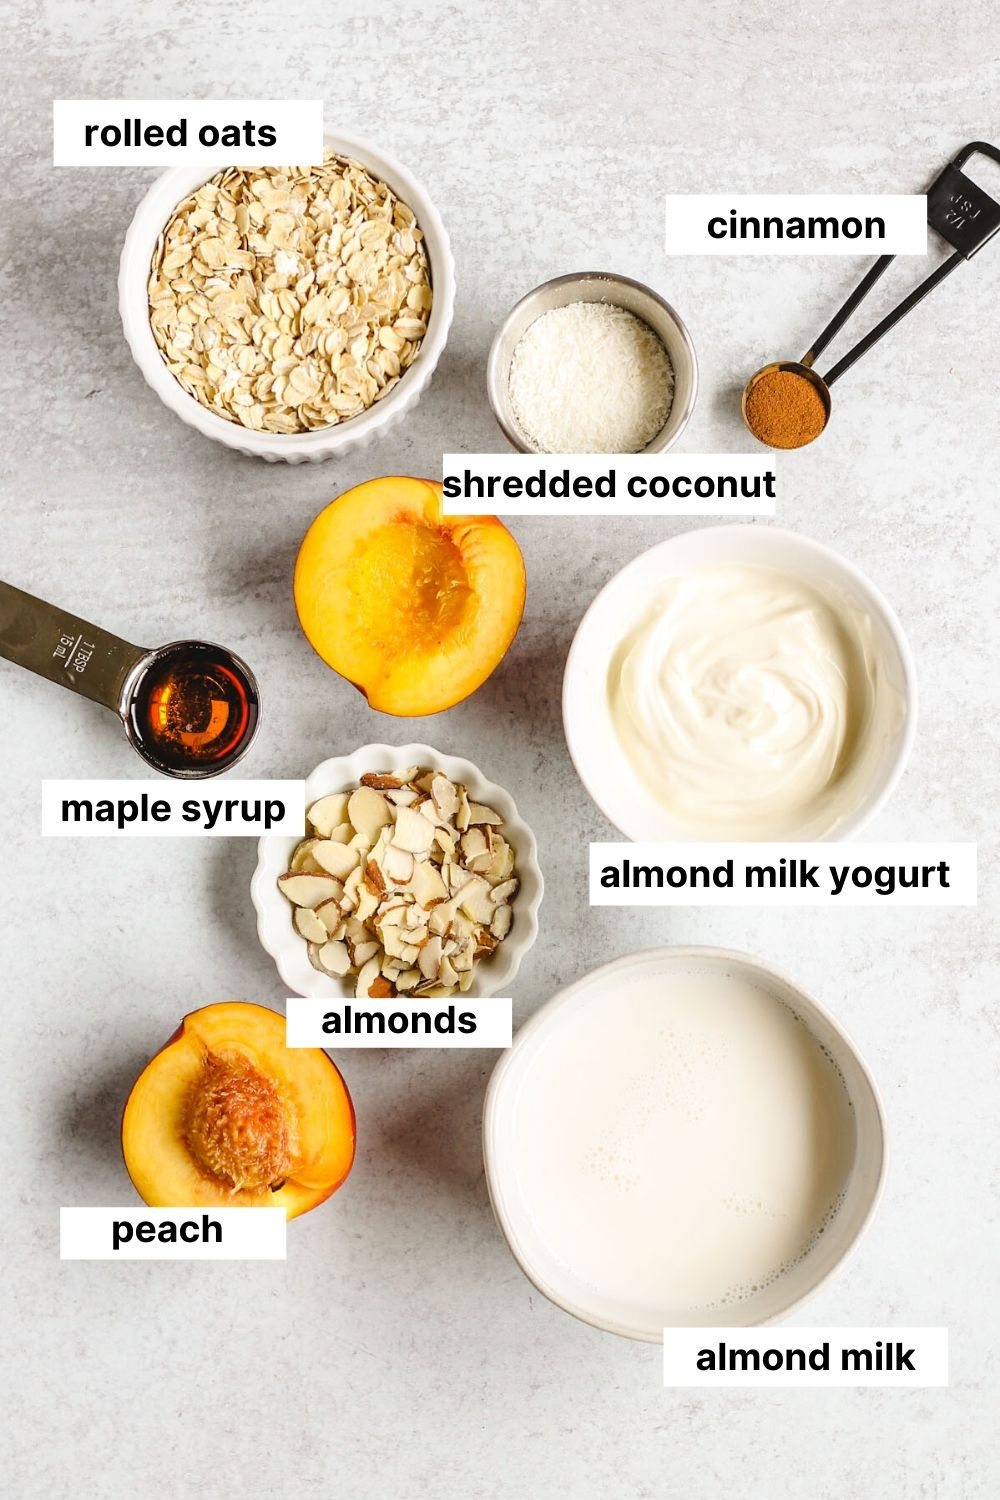 labeled ingredients needed to make peaches and cream overnight oats (oats, cinnamon, shredded coconut, maple syrup, almonds, almond milk yogurt, peach, almond milk).